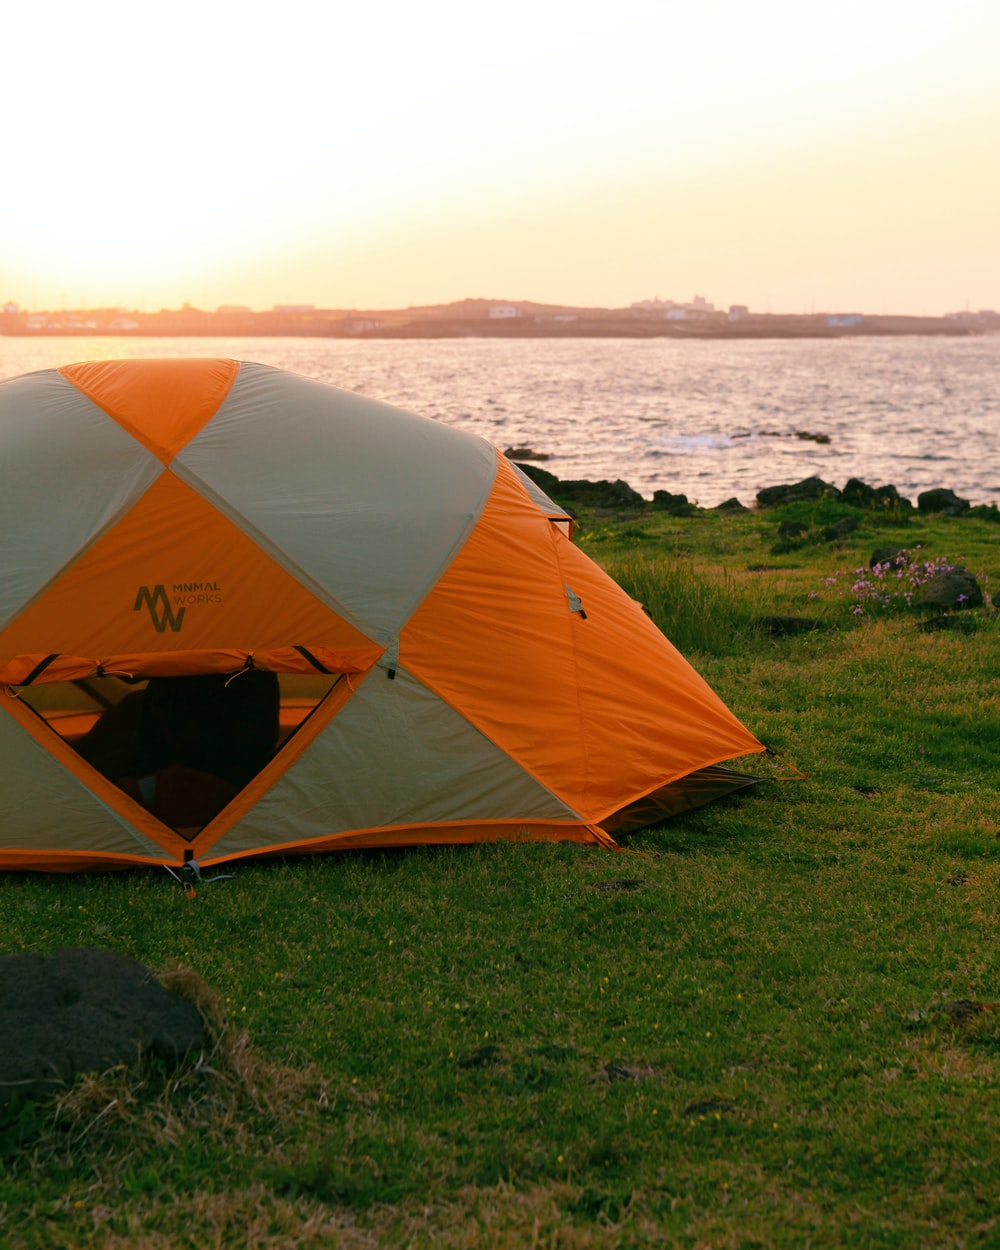 orange and gray dome tent on green grass field near body of water during daytime